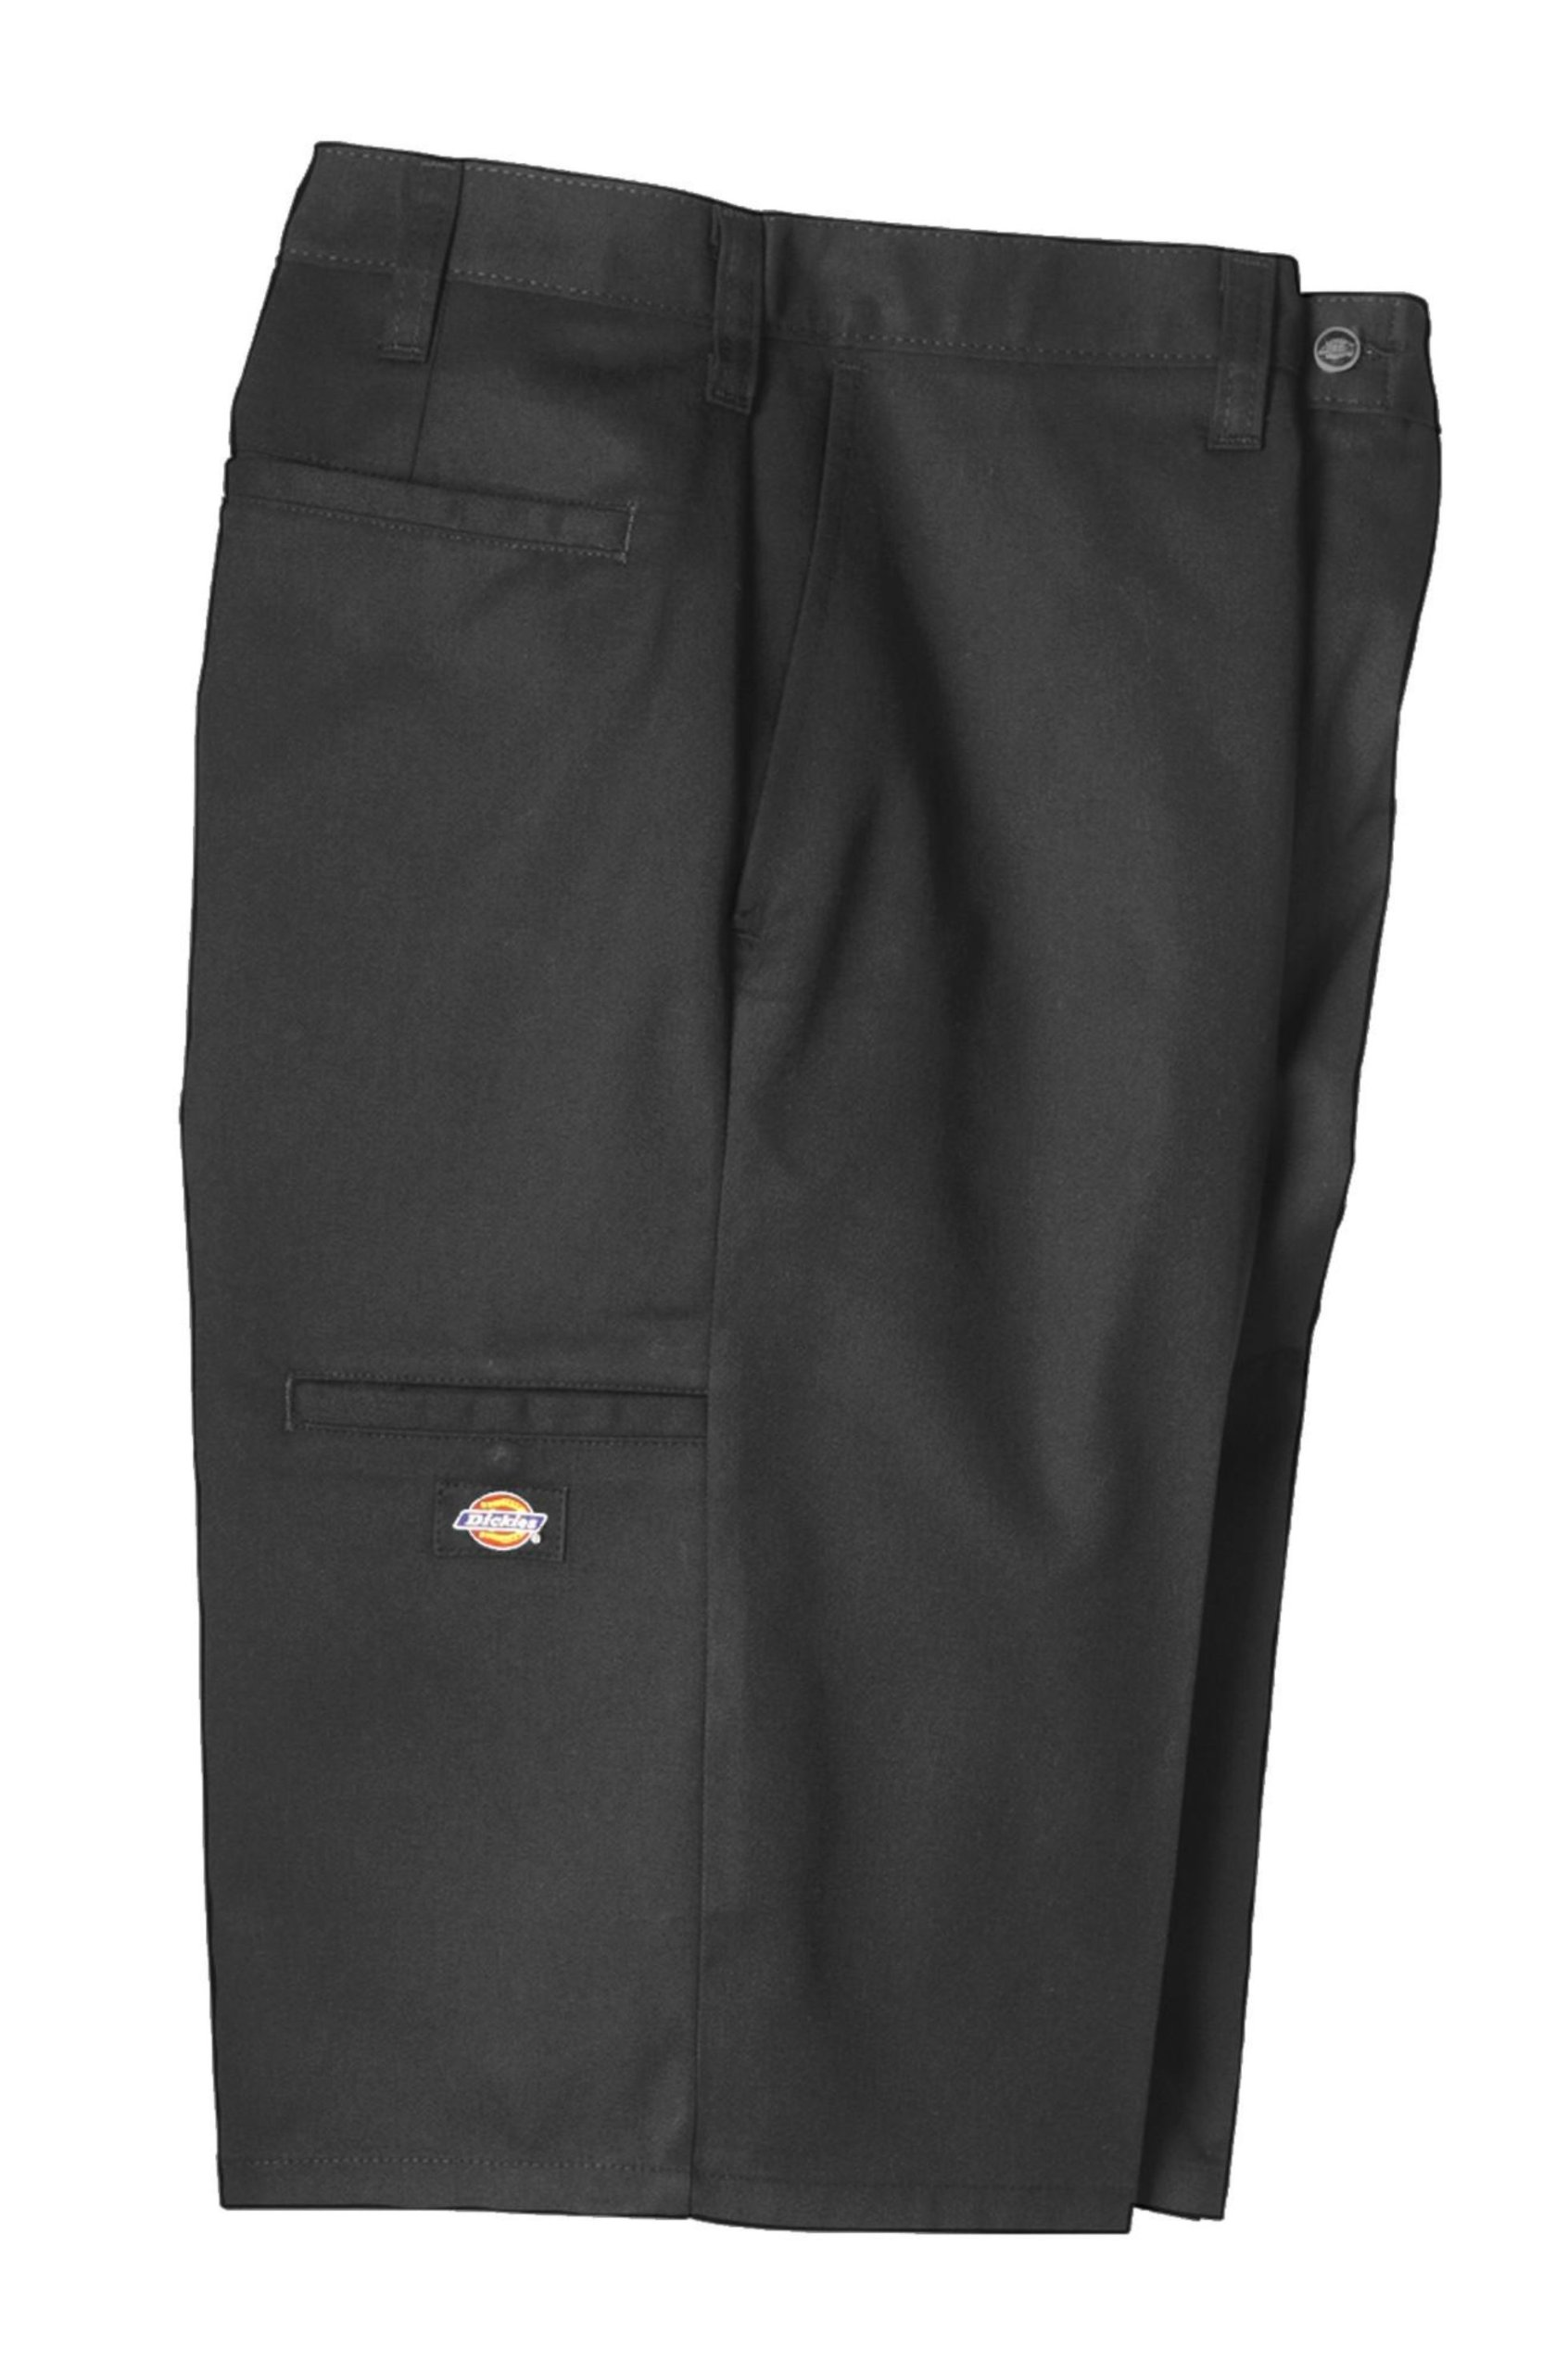 Dickies Occupational Workwear LR642BK 33 Polyester/Cotton Relaxed Fit Men's Premium Industrial Multi-Use Pocket Short with Hidden Snap Closure, 33'' Waist Size, 11'' Inseam, Black